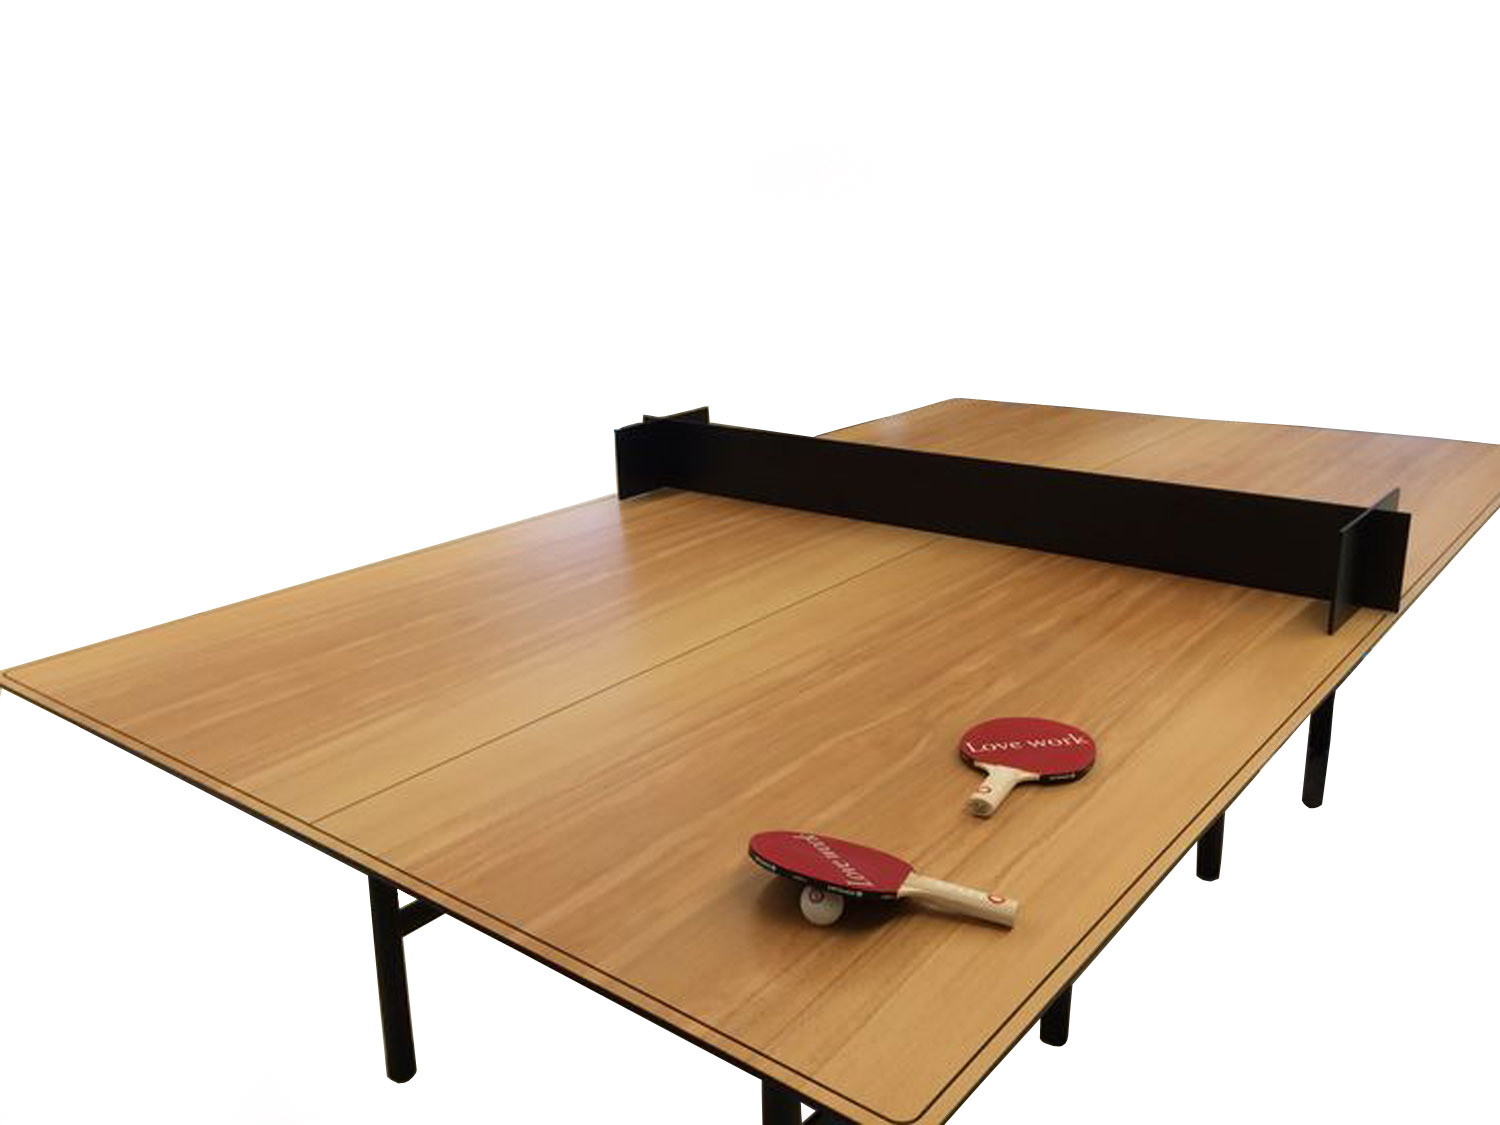 Dan Office Table Tennis from Bulo